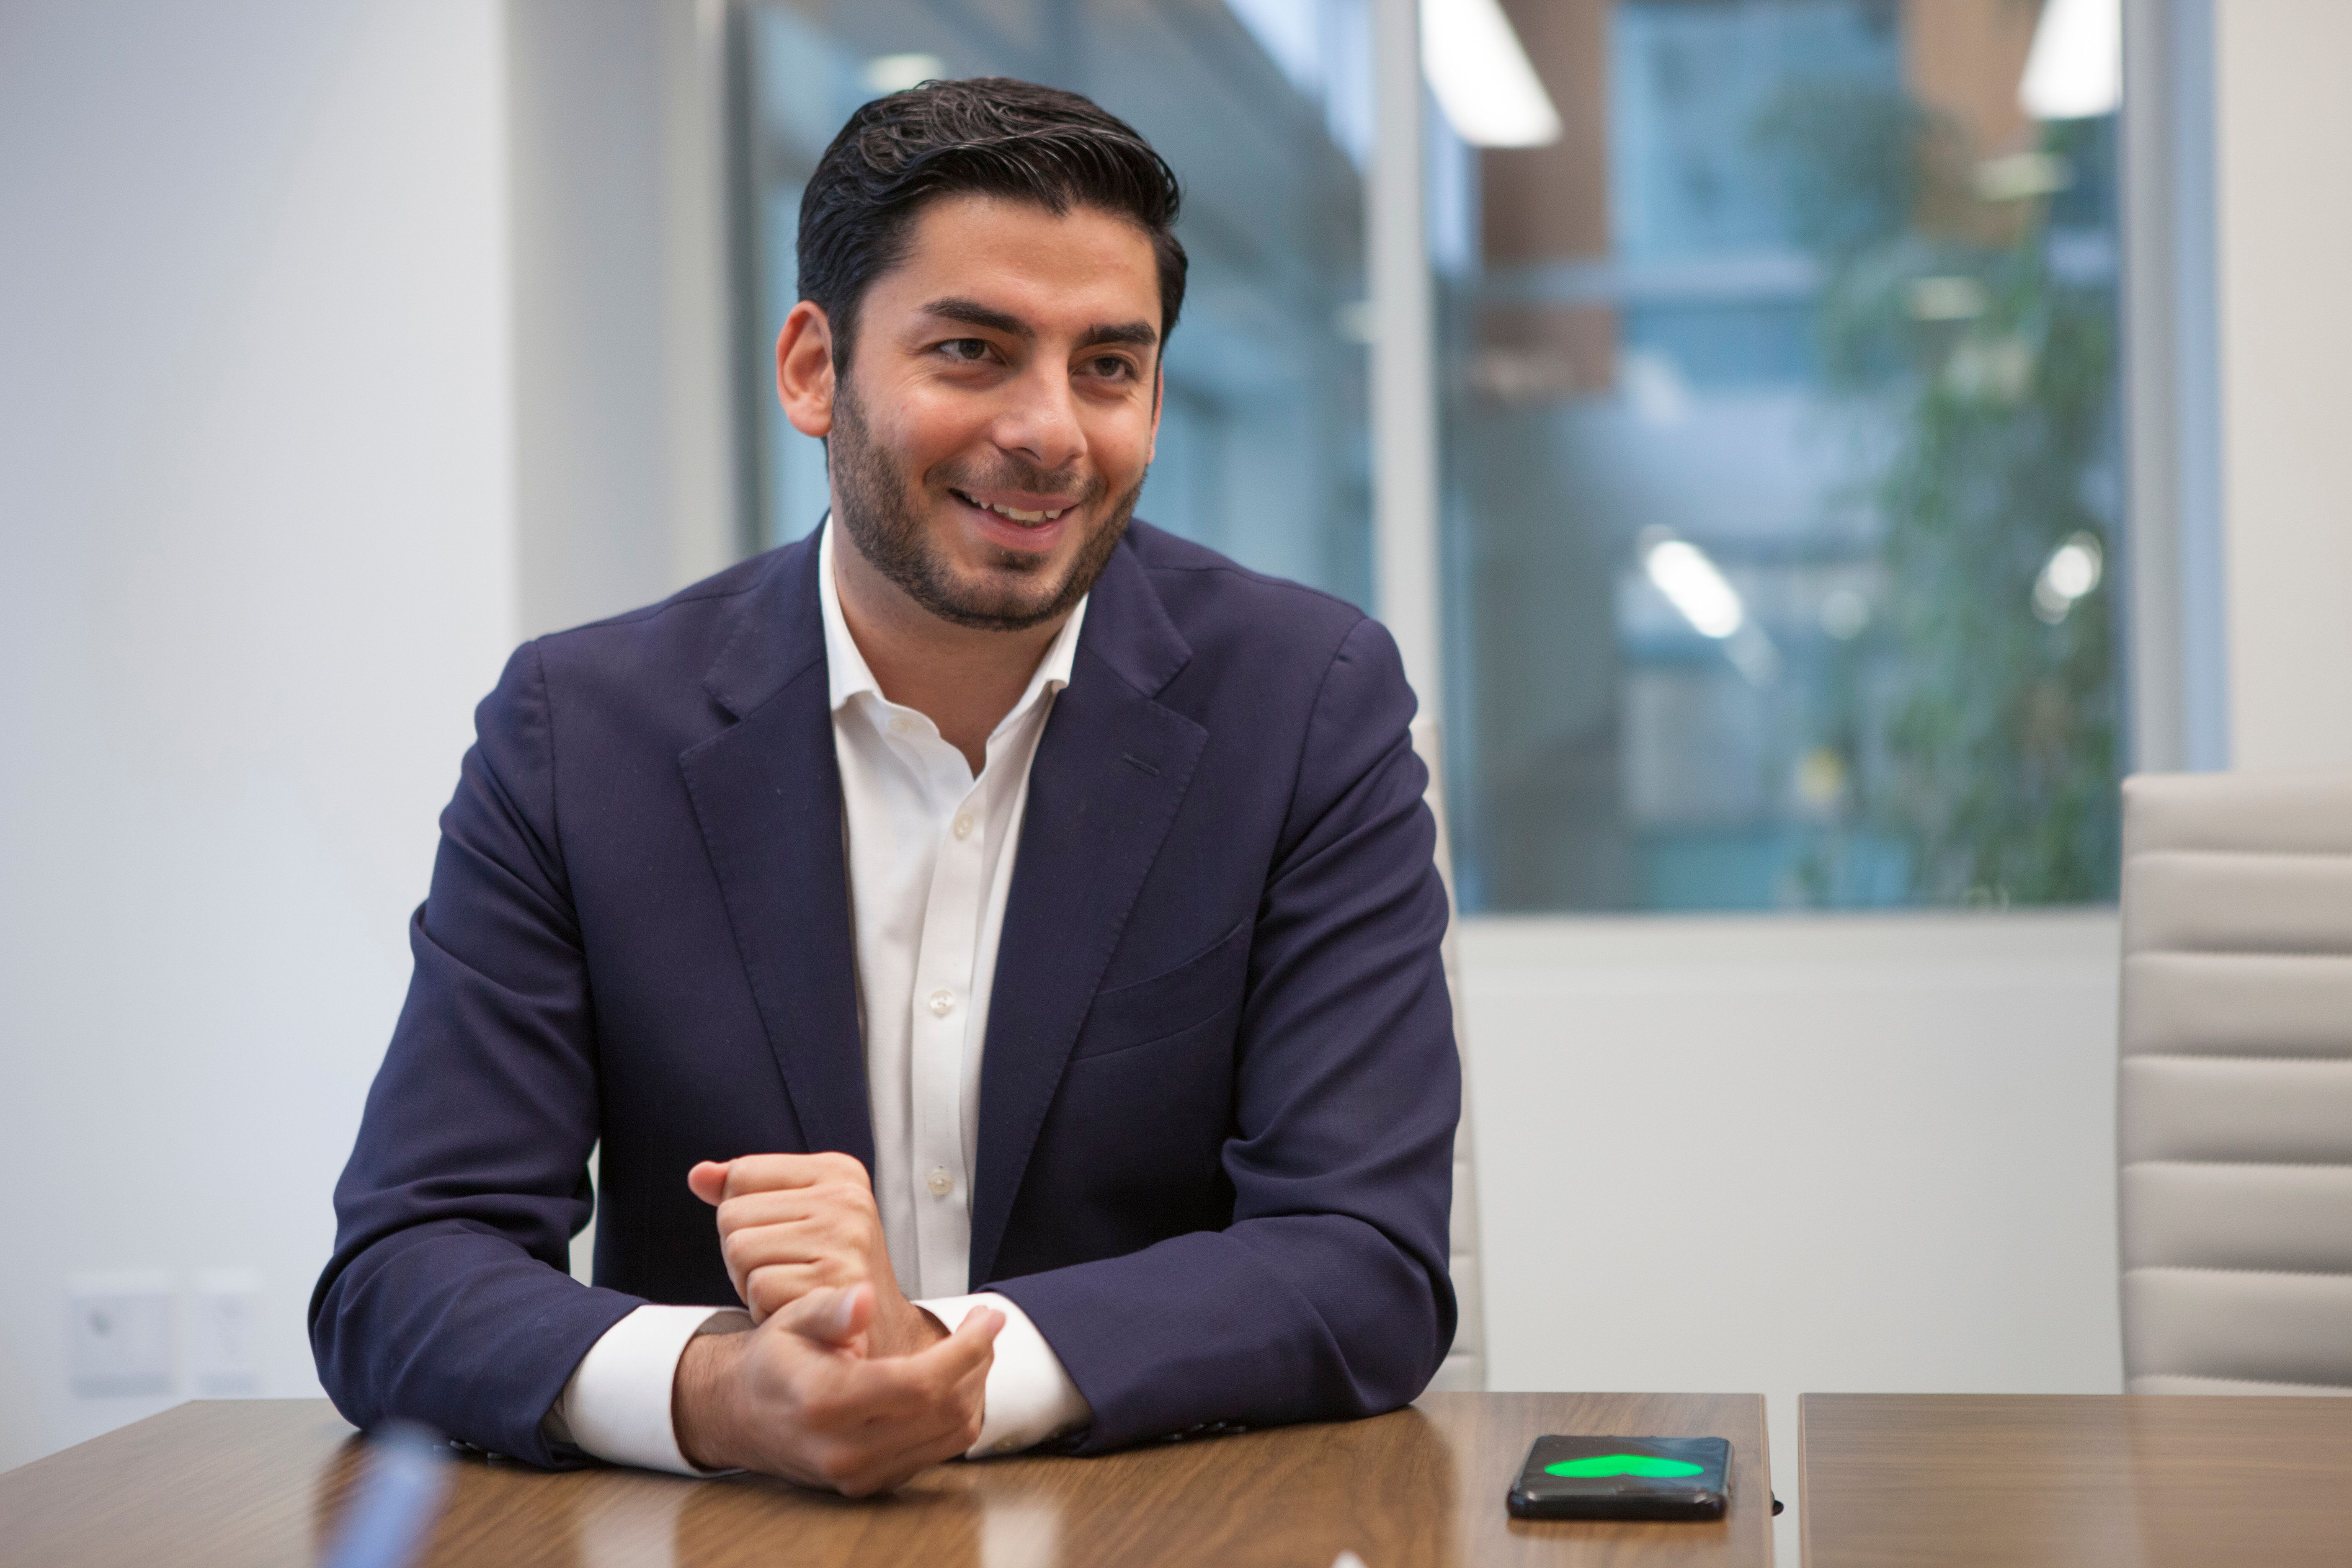 Ammar Campa-Najjar is hoping to unseatRep. Duncan Hunter in California's staunchly conservative 50th Congressiona